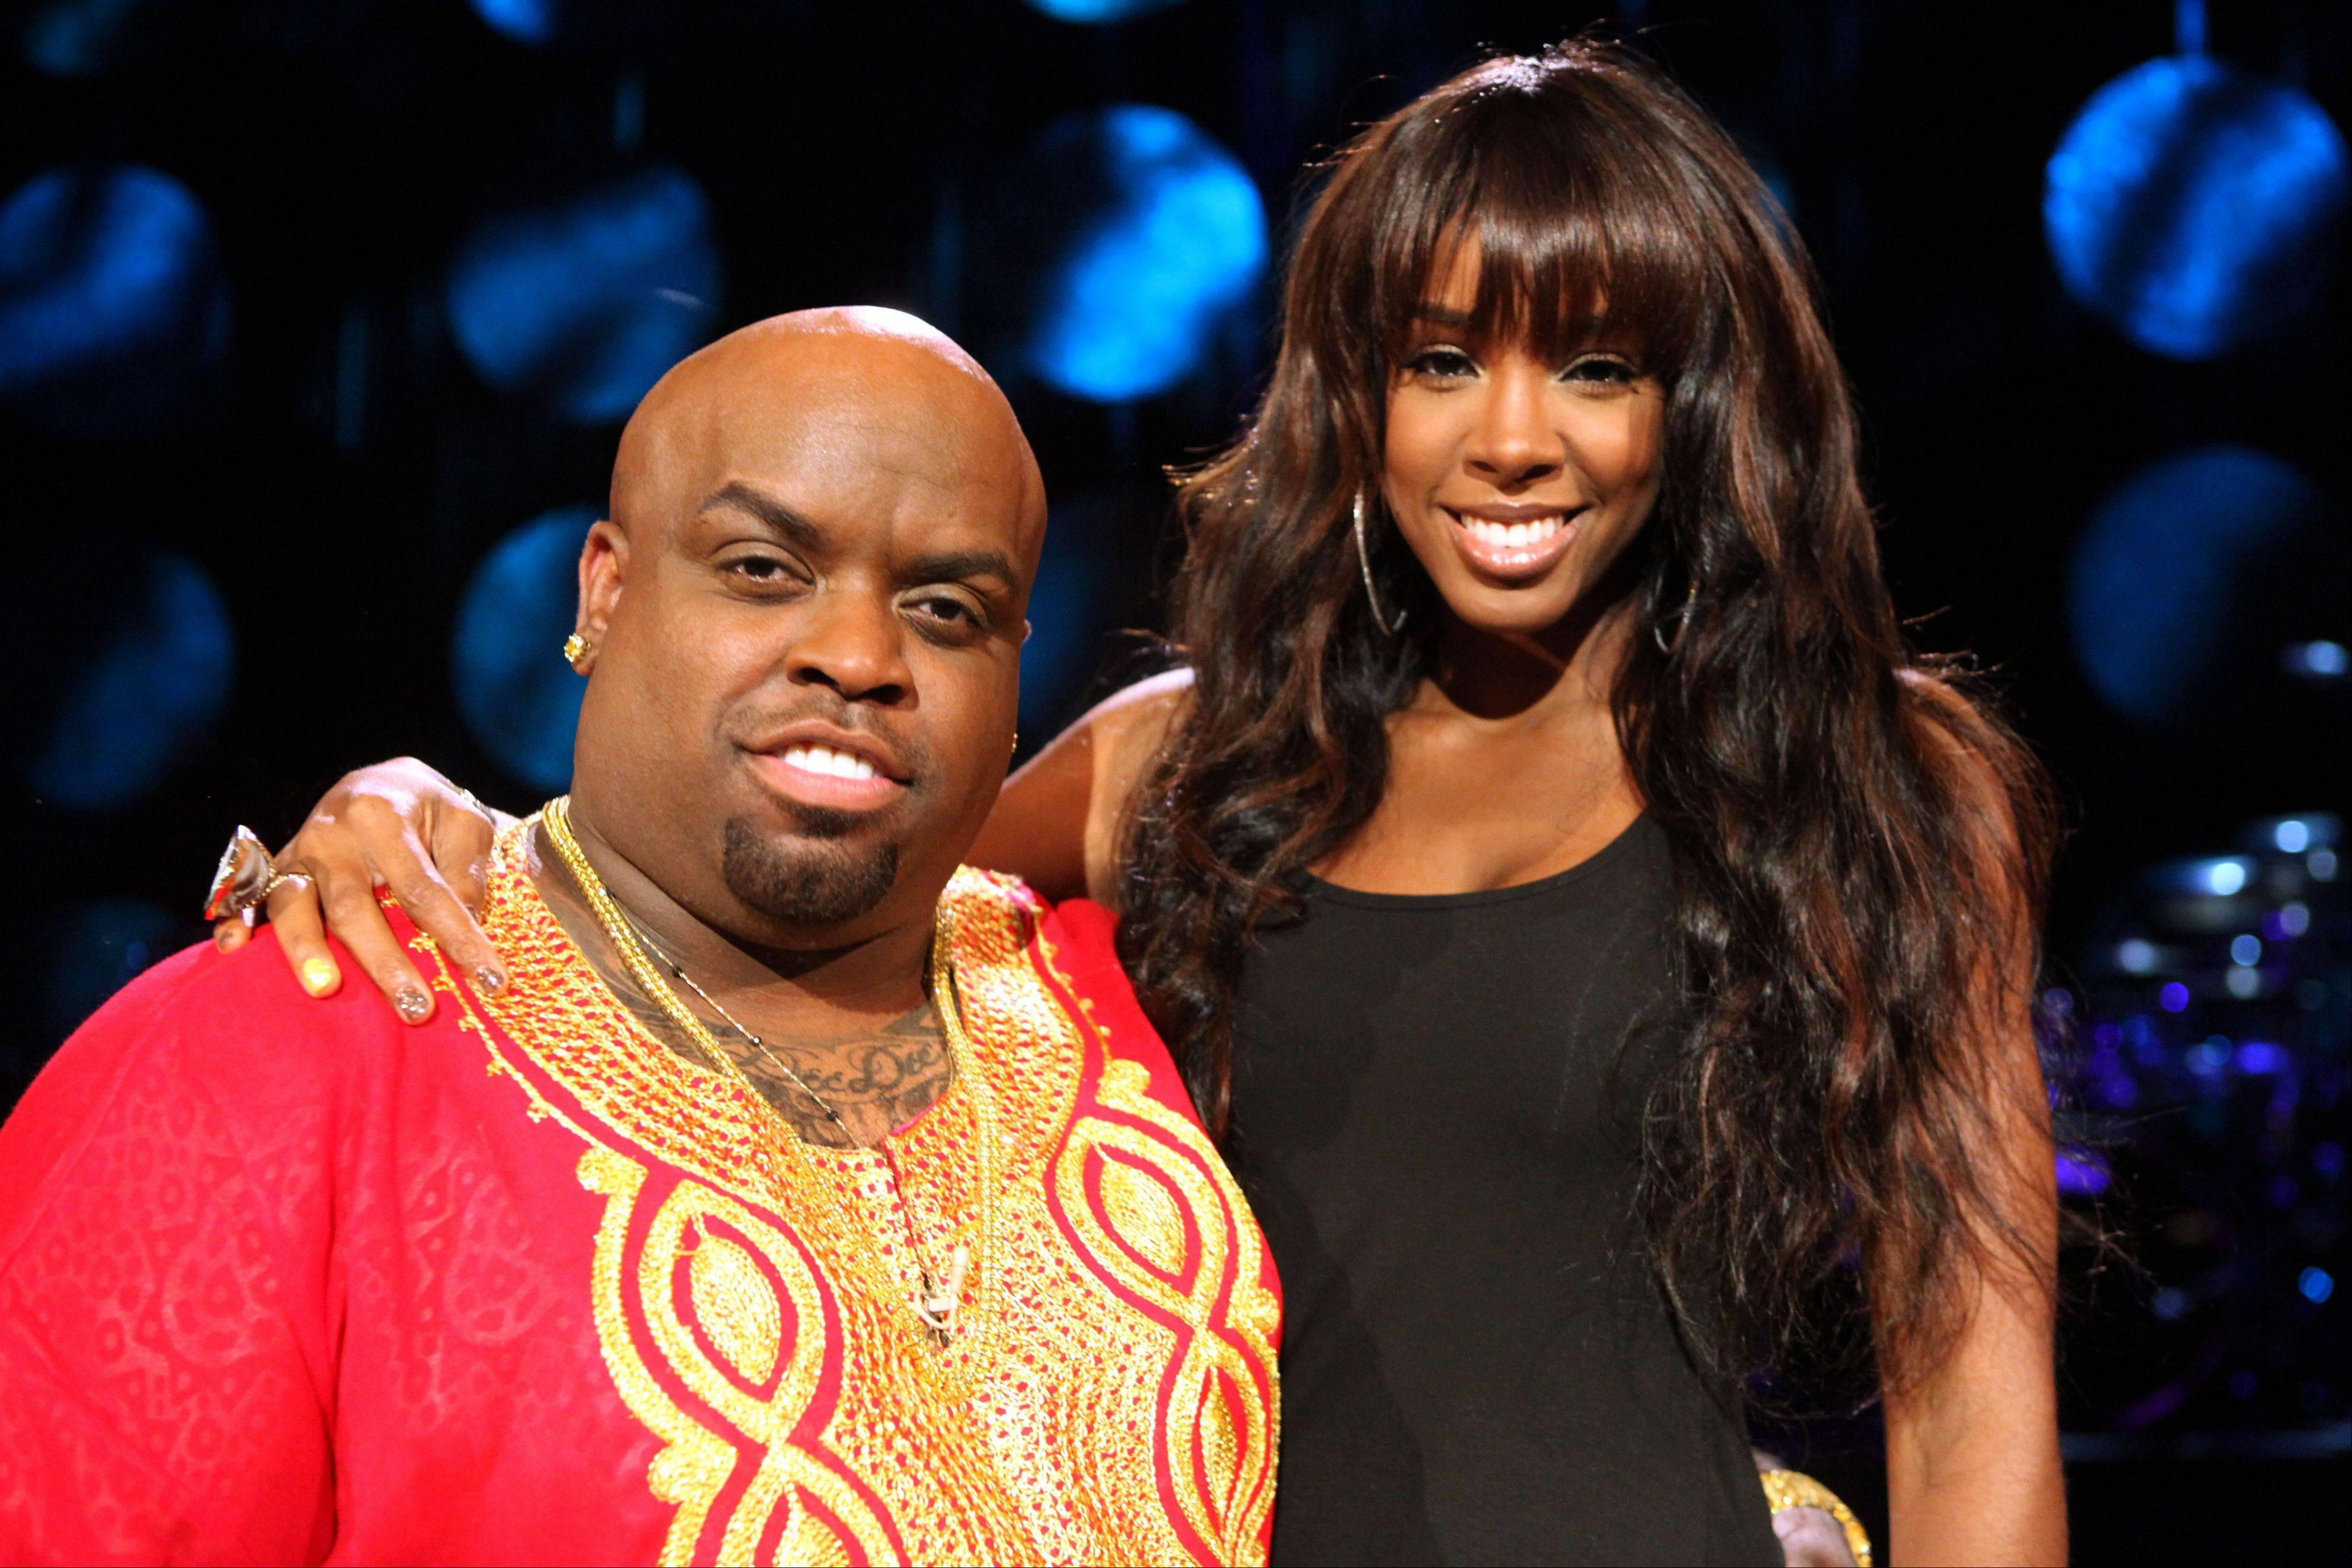 Cee Lo Green headlines Macy's 13th annual Glamorama 2011 at the Chicago Theatre.